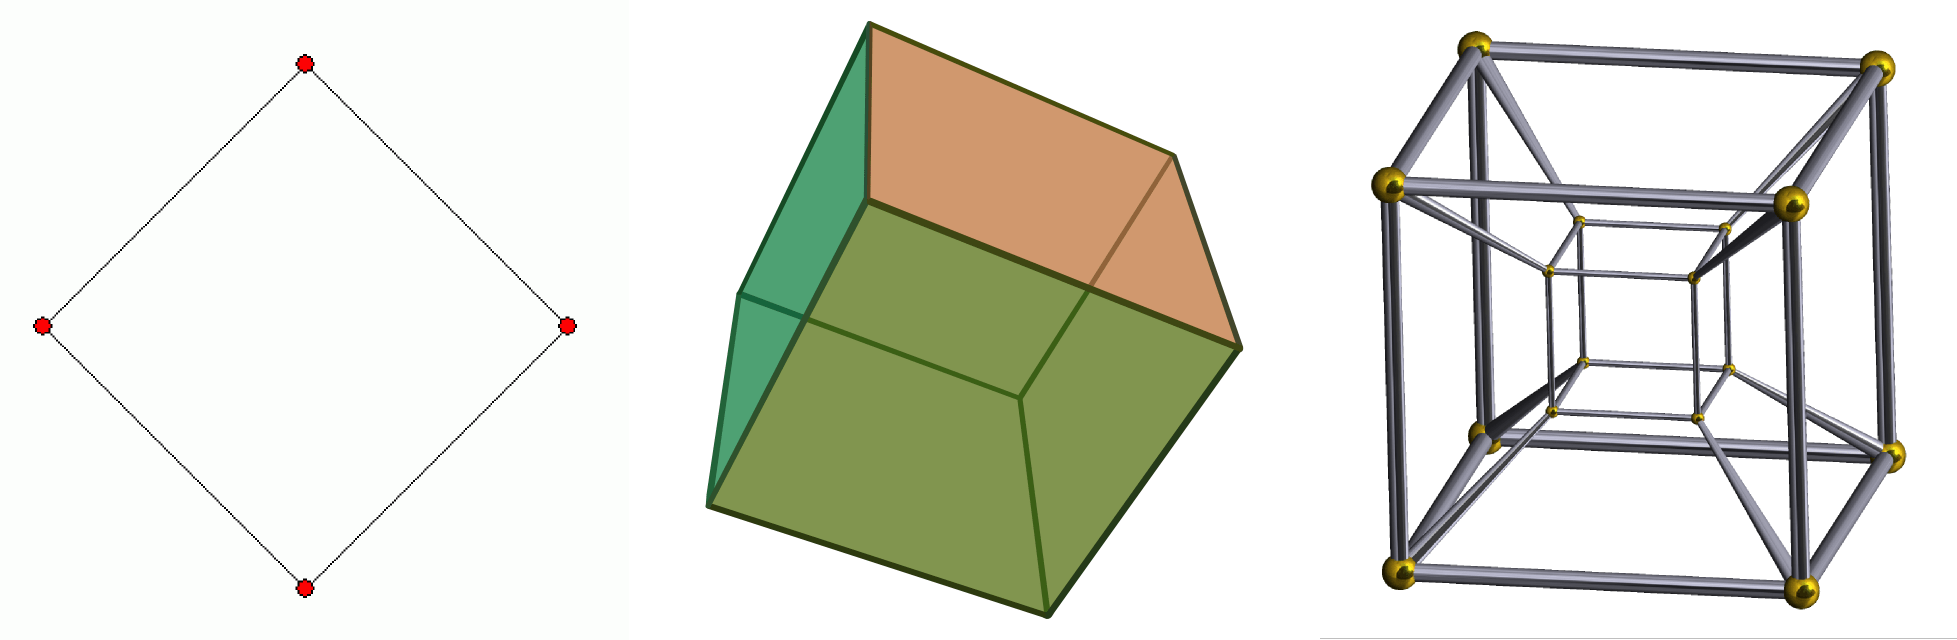 Square cube tesseract .png – Andeggs – Wikimedia commons